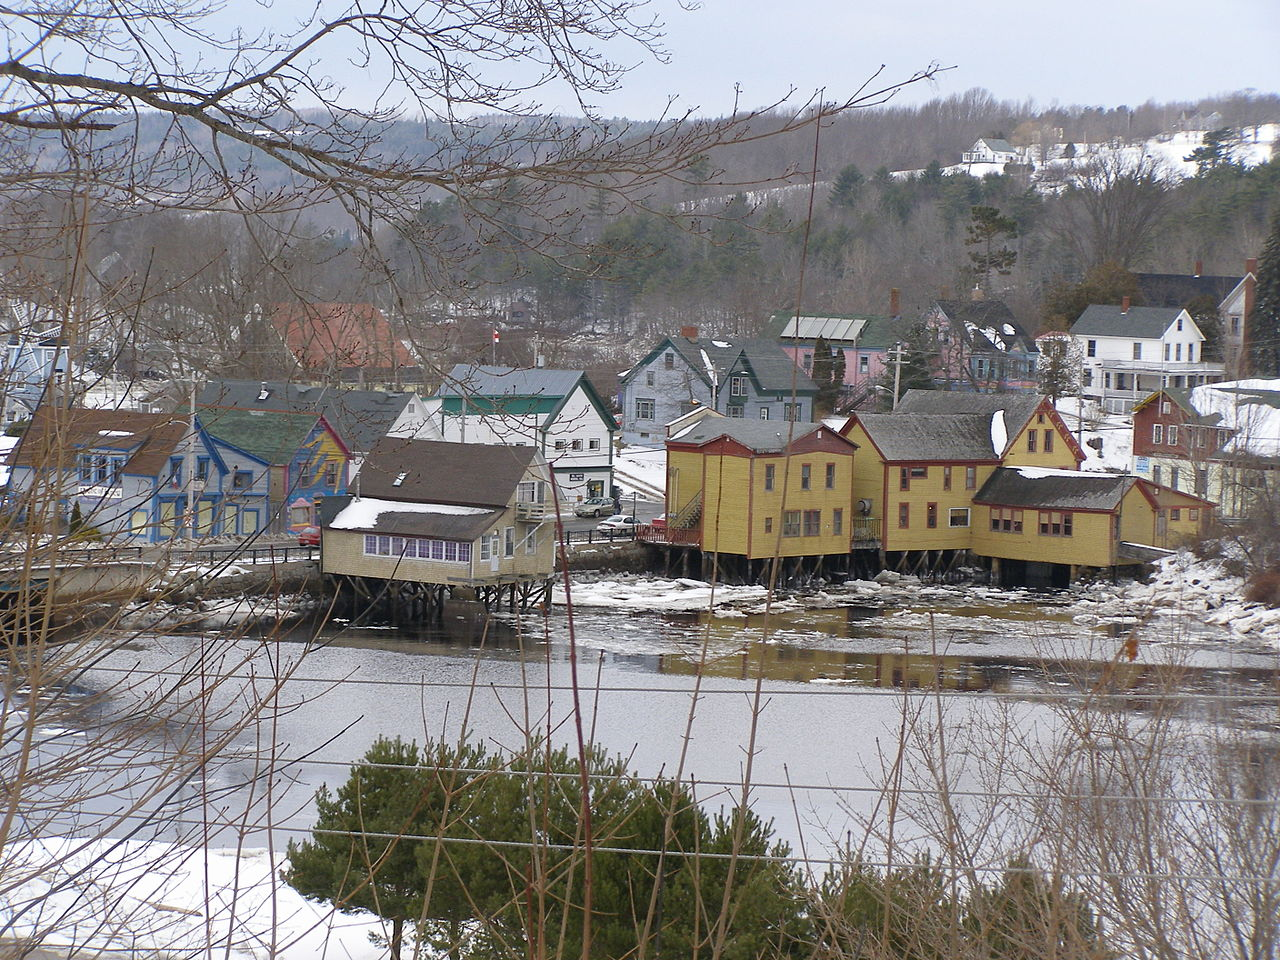 File:Bear river nova scotia in winter.JPG - Wikimedia Commons